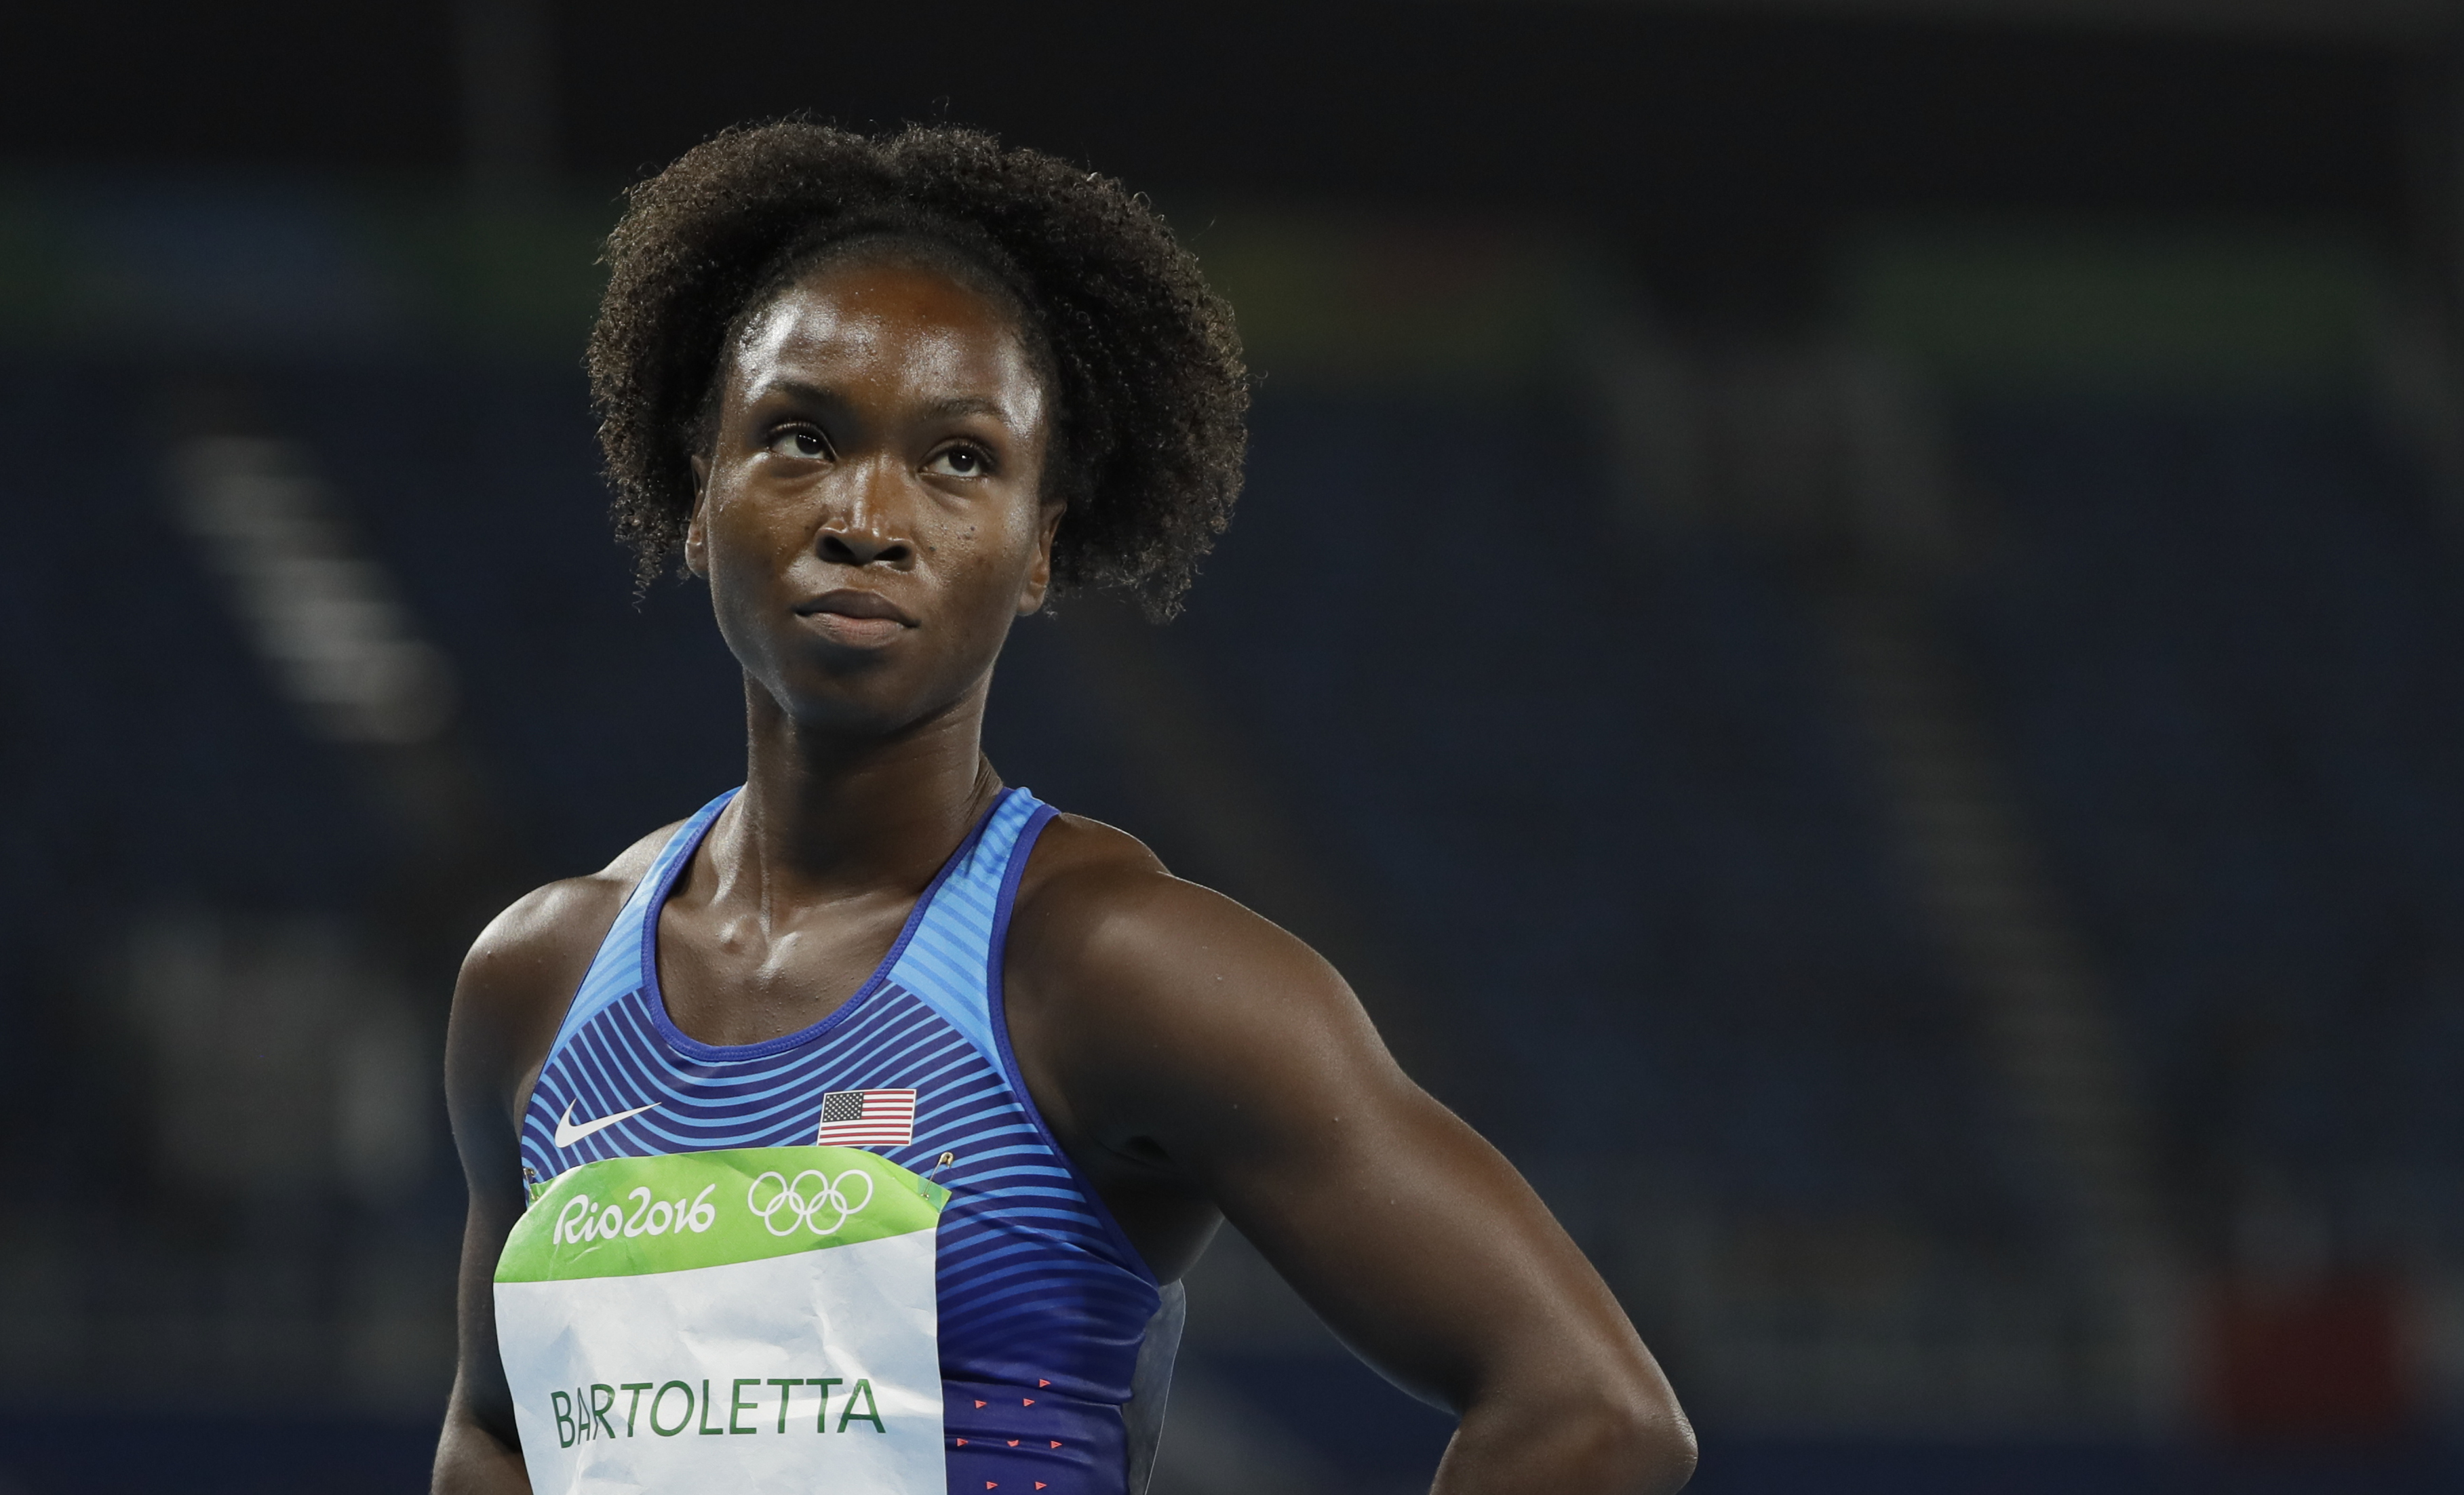 United States' Tianna Bartoletta after winning a women's 100-meter heat during the athletics competitions of the 2016 Summer Olympics at the Olympic stadium in Rio de Janeiro, Brazil, Friday, Aug. 12, 2016. (AP Photo/David J. Phillip)